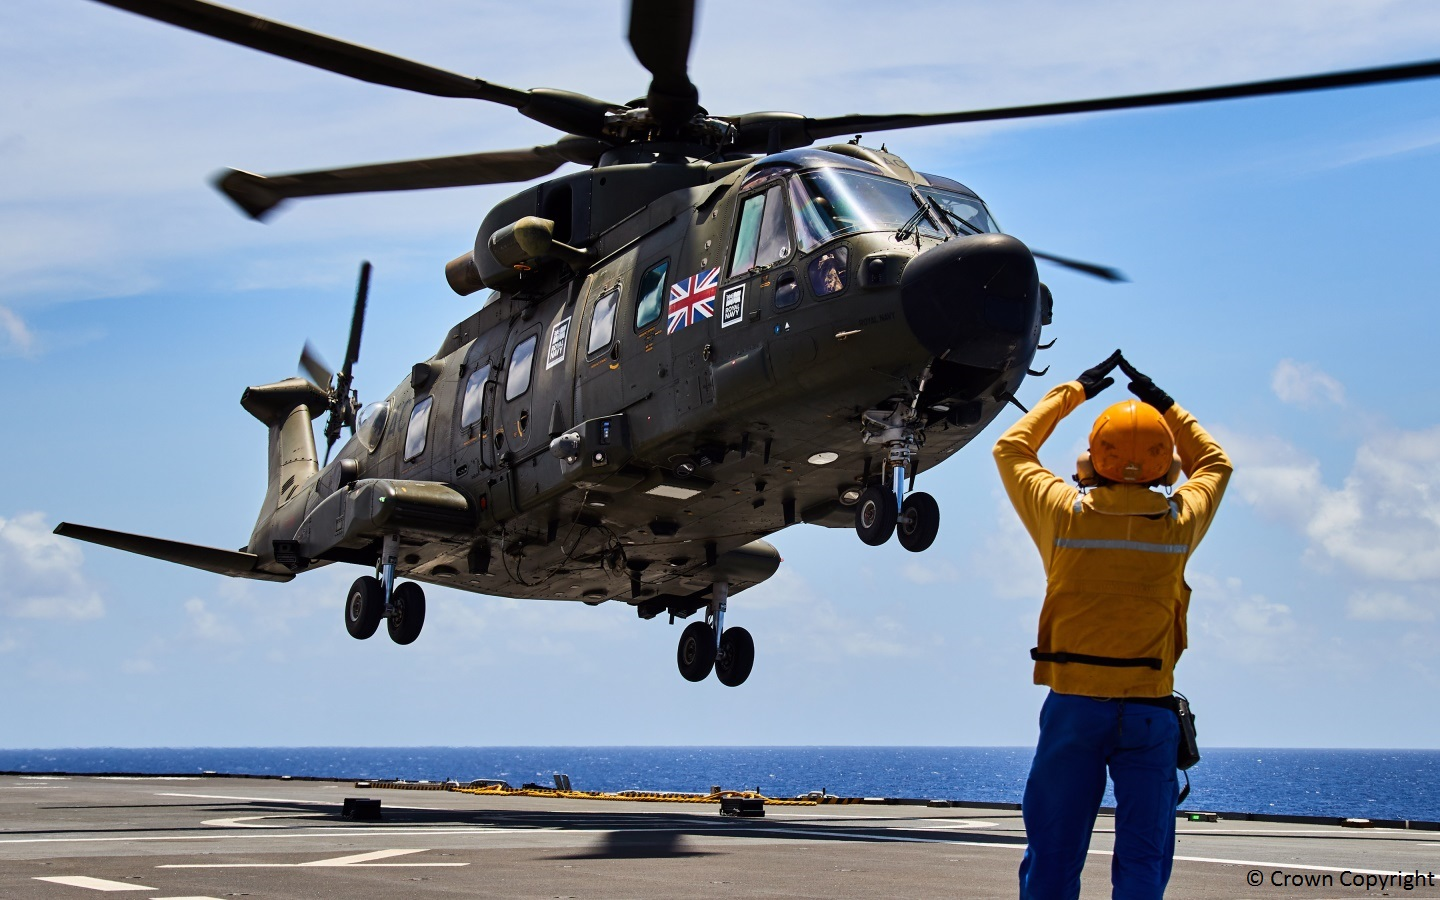 Merlin helicopter landing on an aircraft carrier